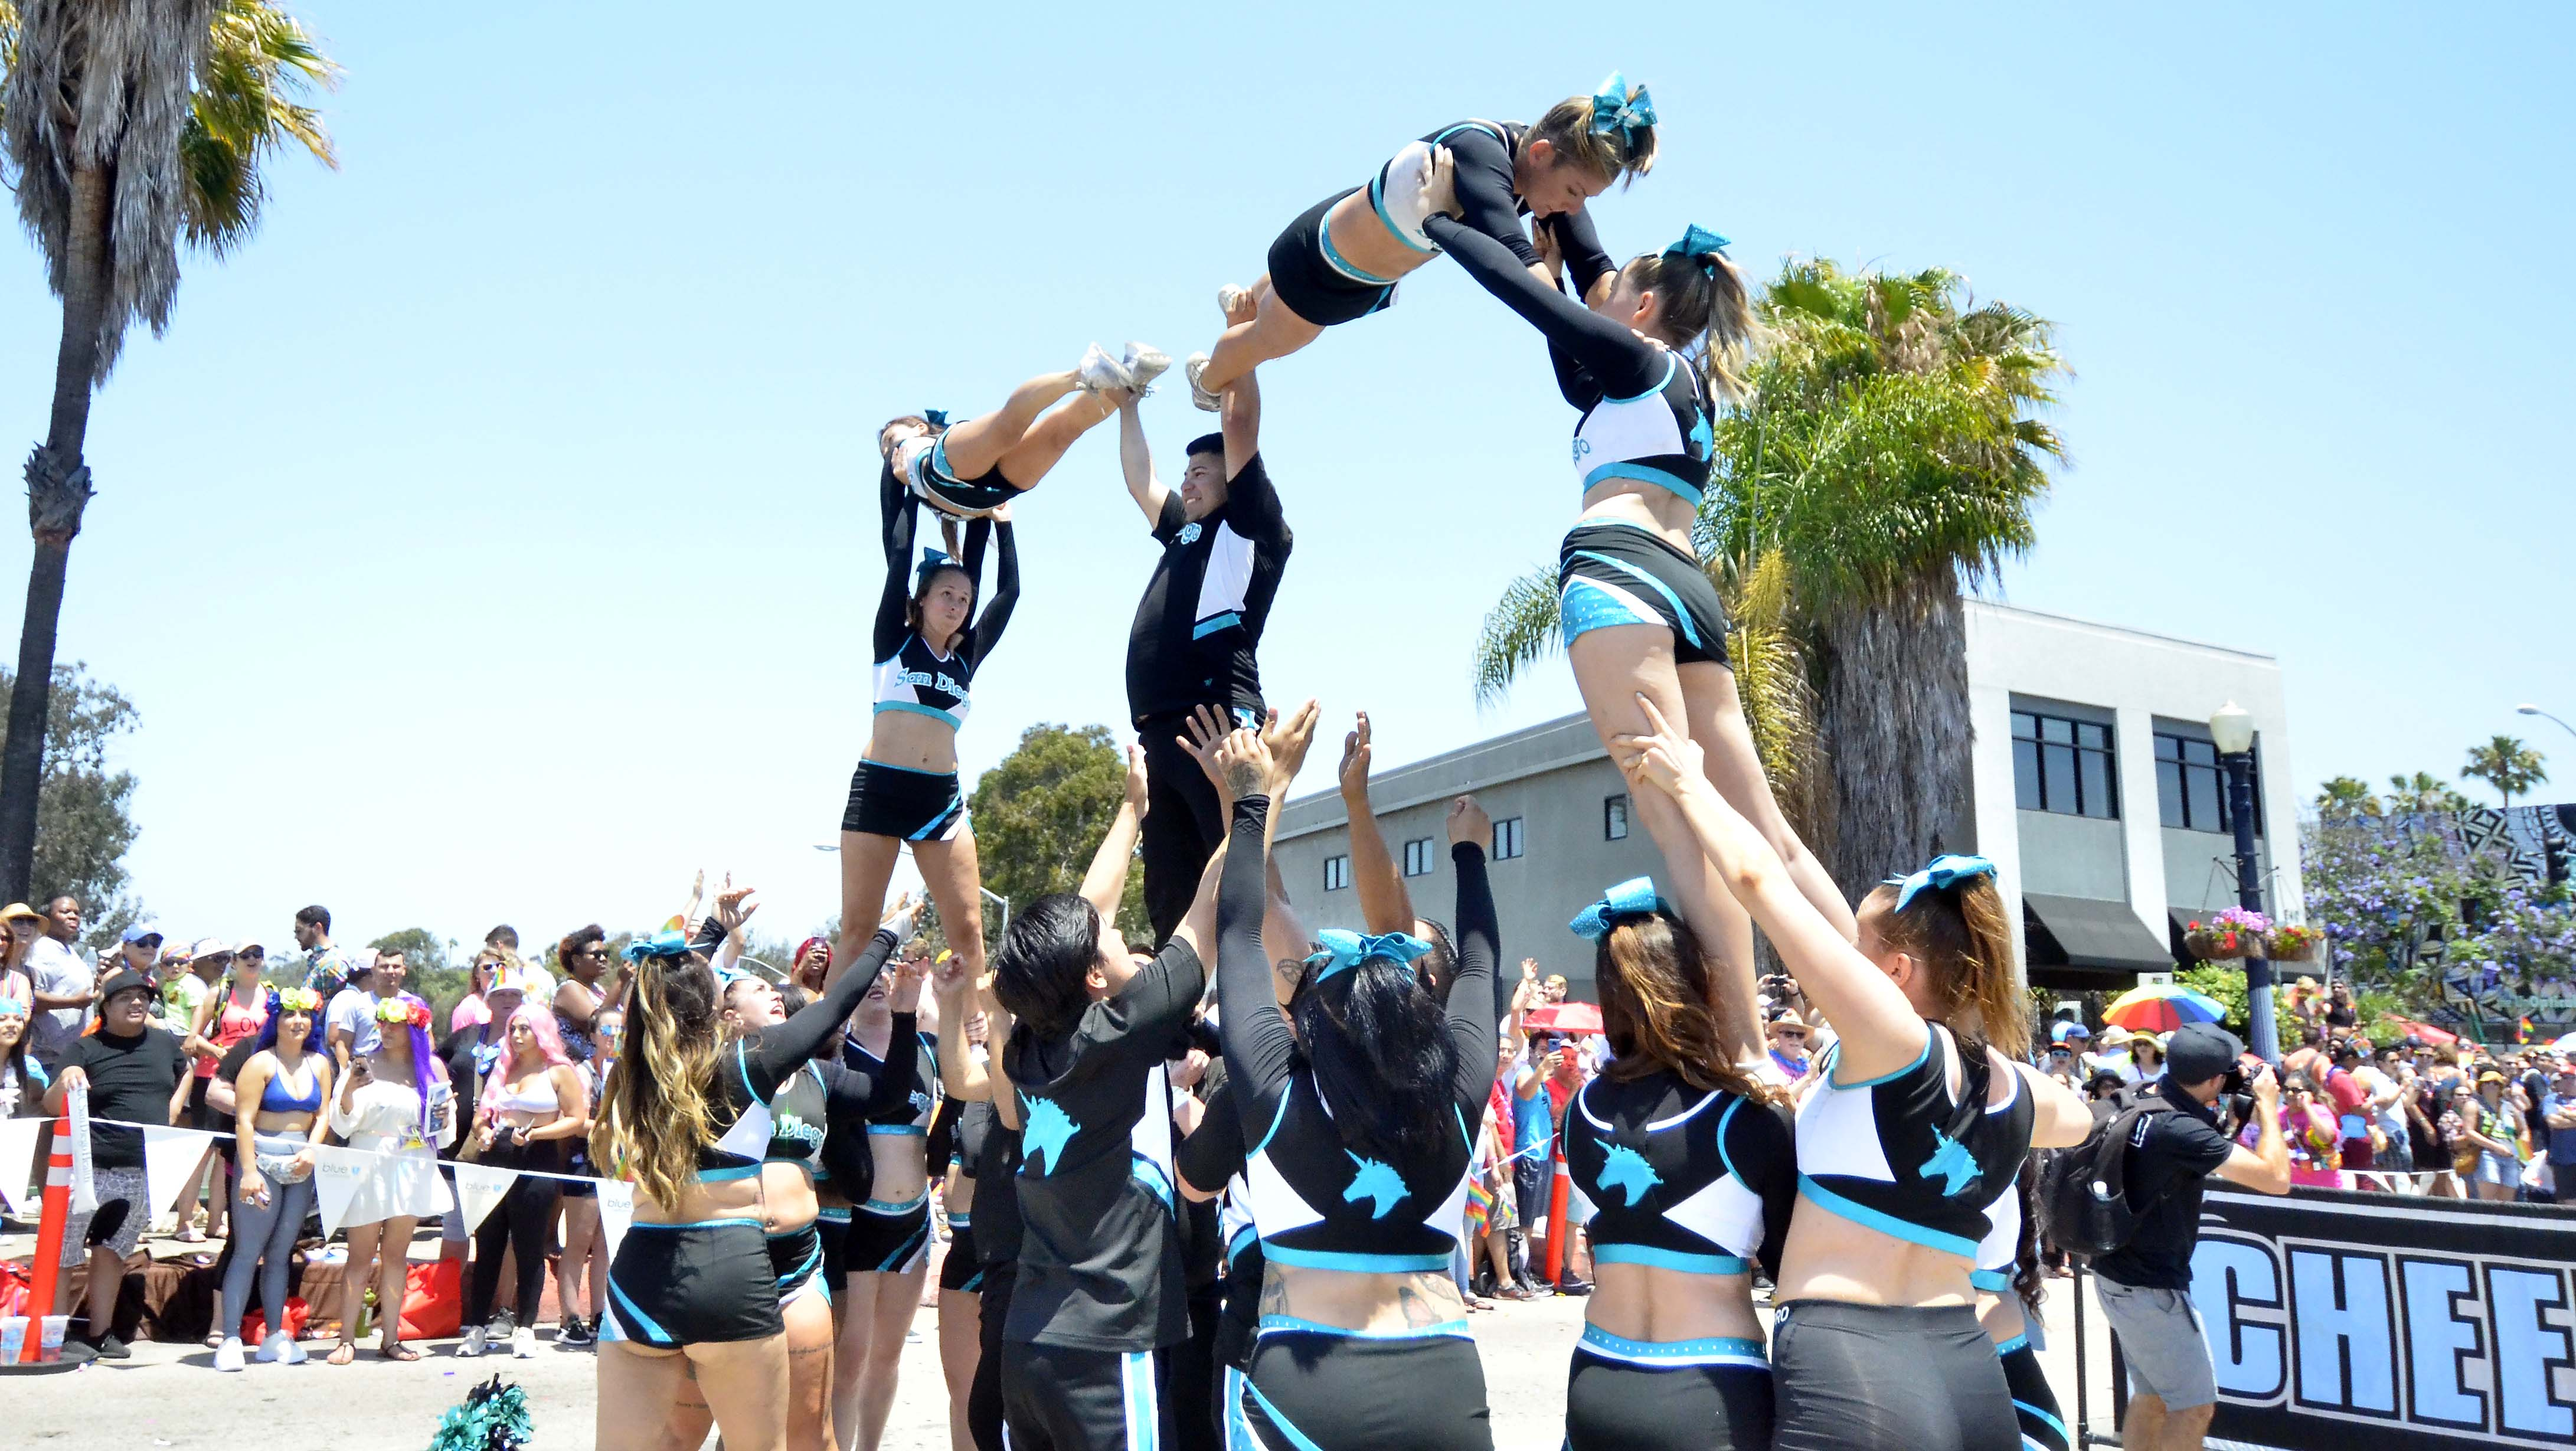 Cheer LA performed some maneuvers during the parade.